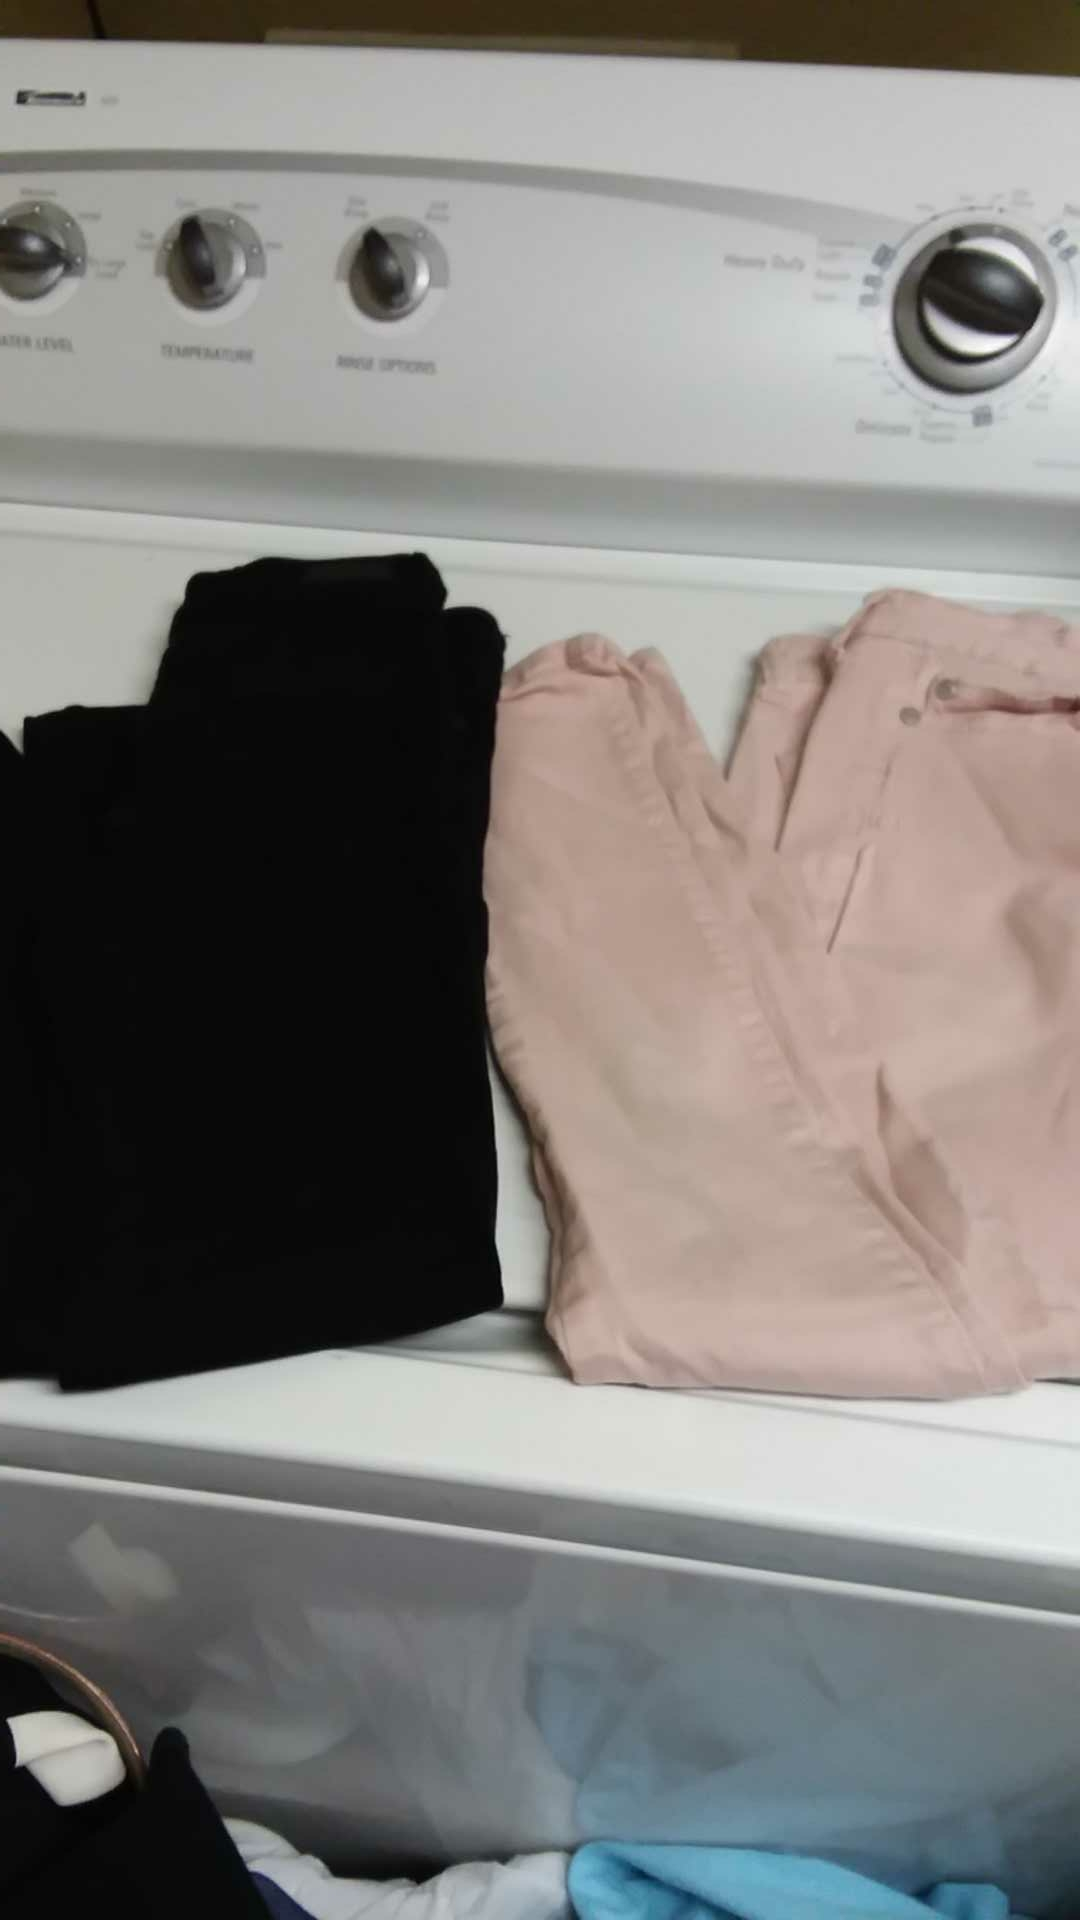 Celebrity pink❤girls pants SZ 8. Used conditions $4 both